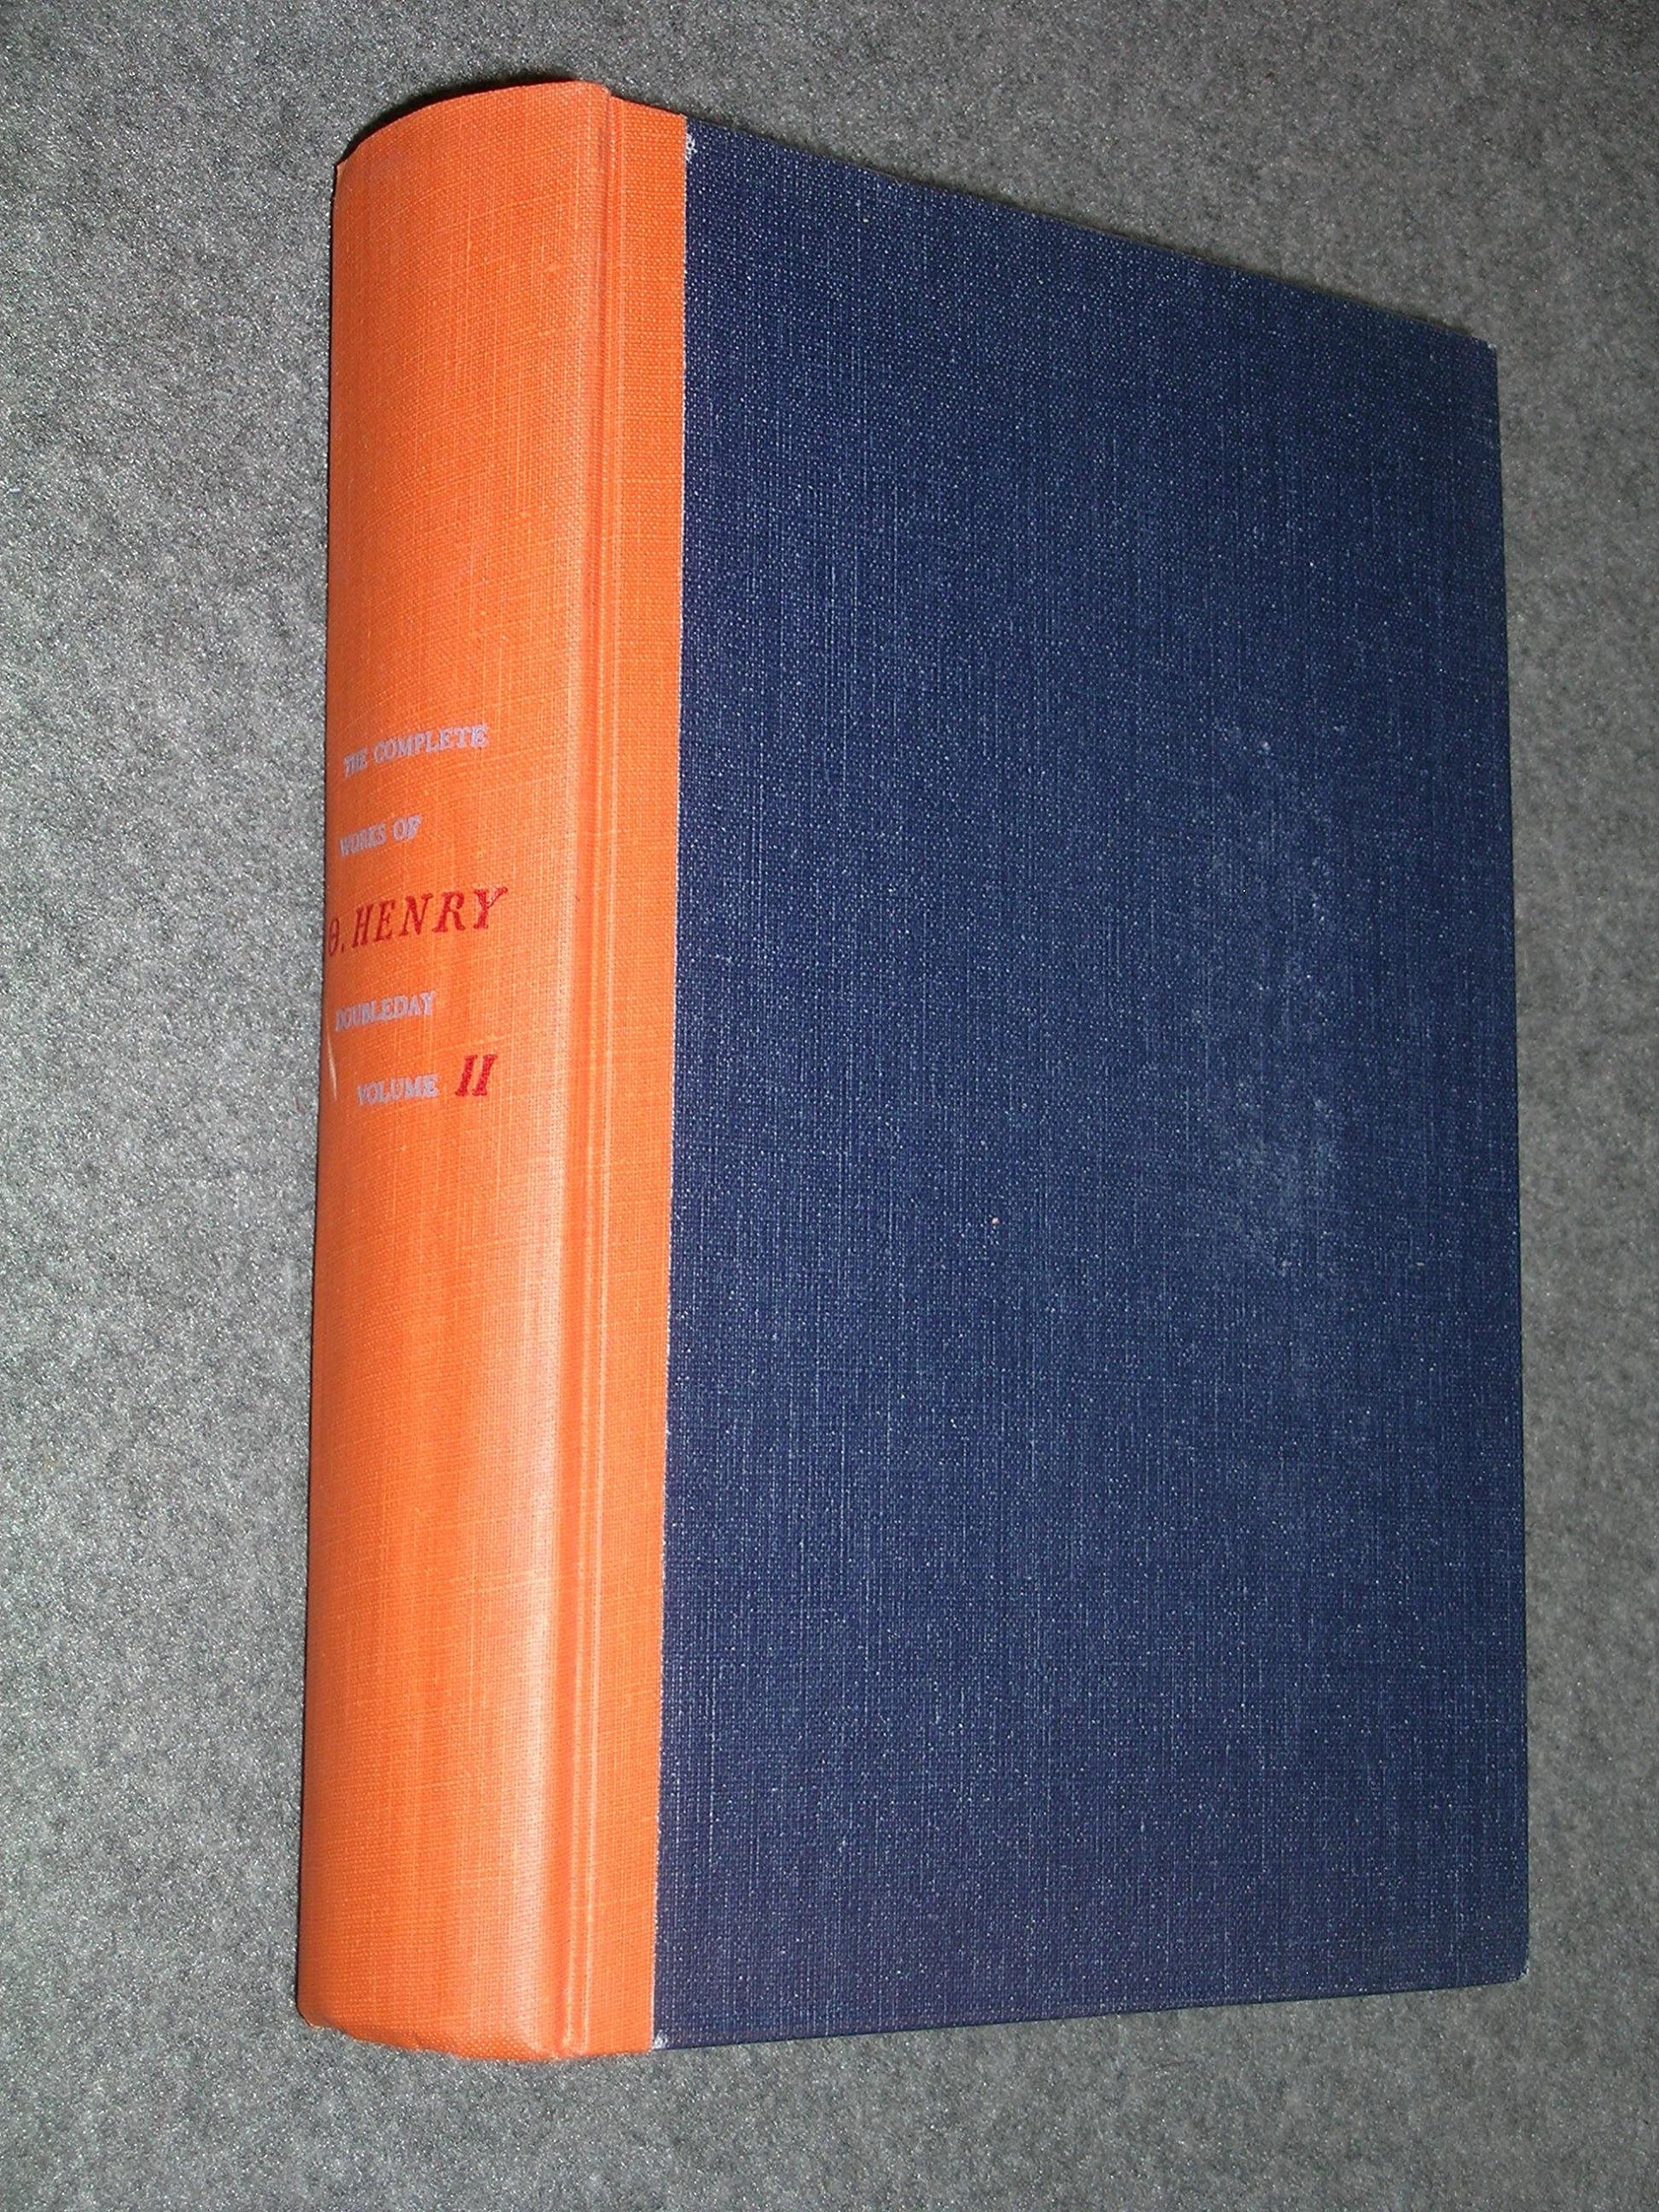 The Complete Works Of O. Henry ~ Volume 1 And 2 _ O HENRY